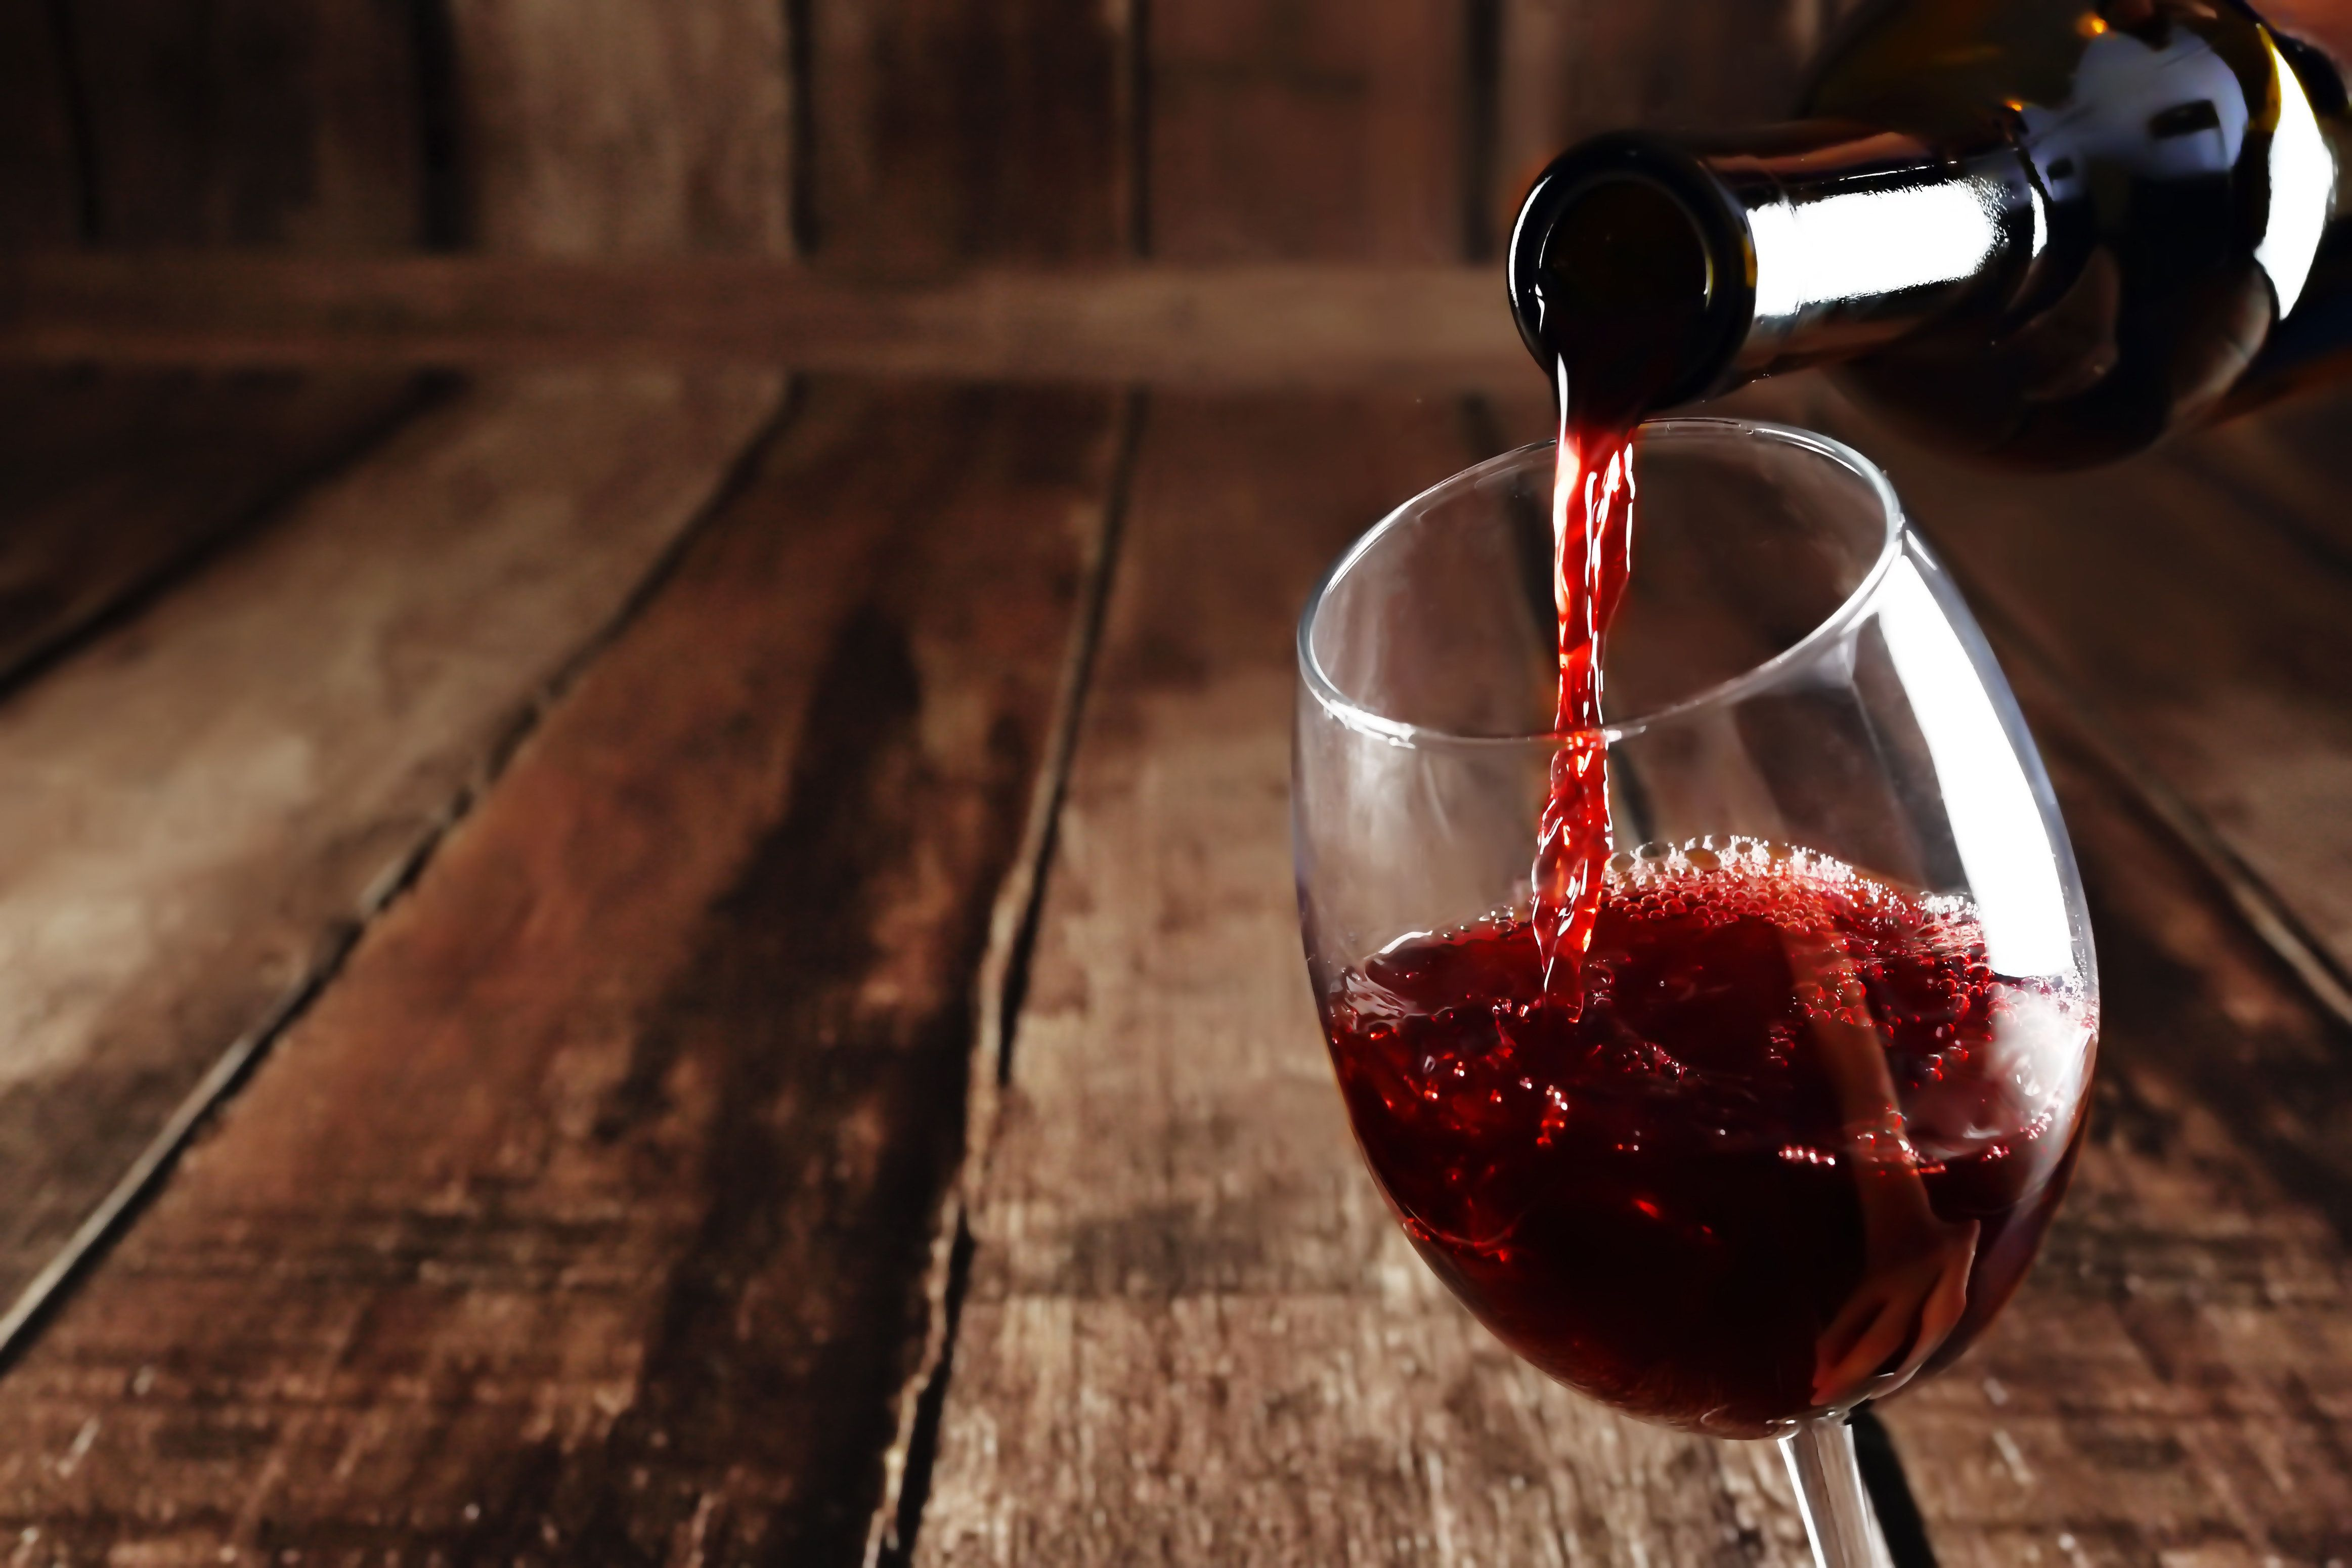 100-Year-Old Woman Says Wine Is The Secret To Her Long